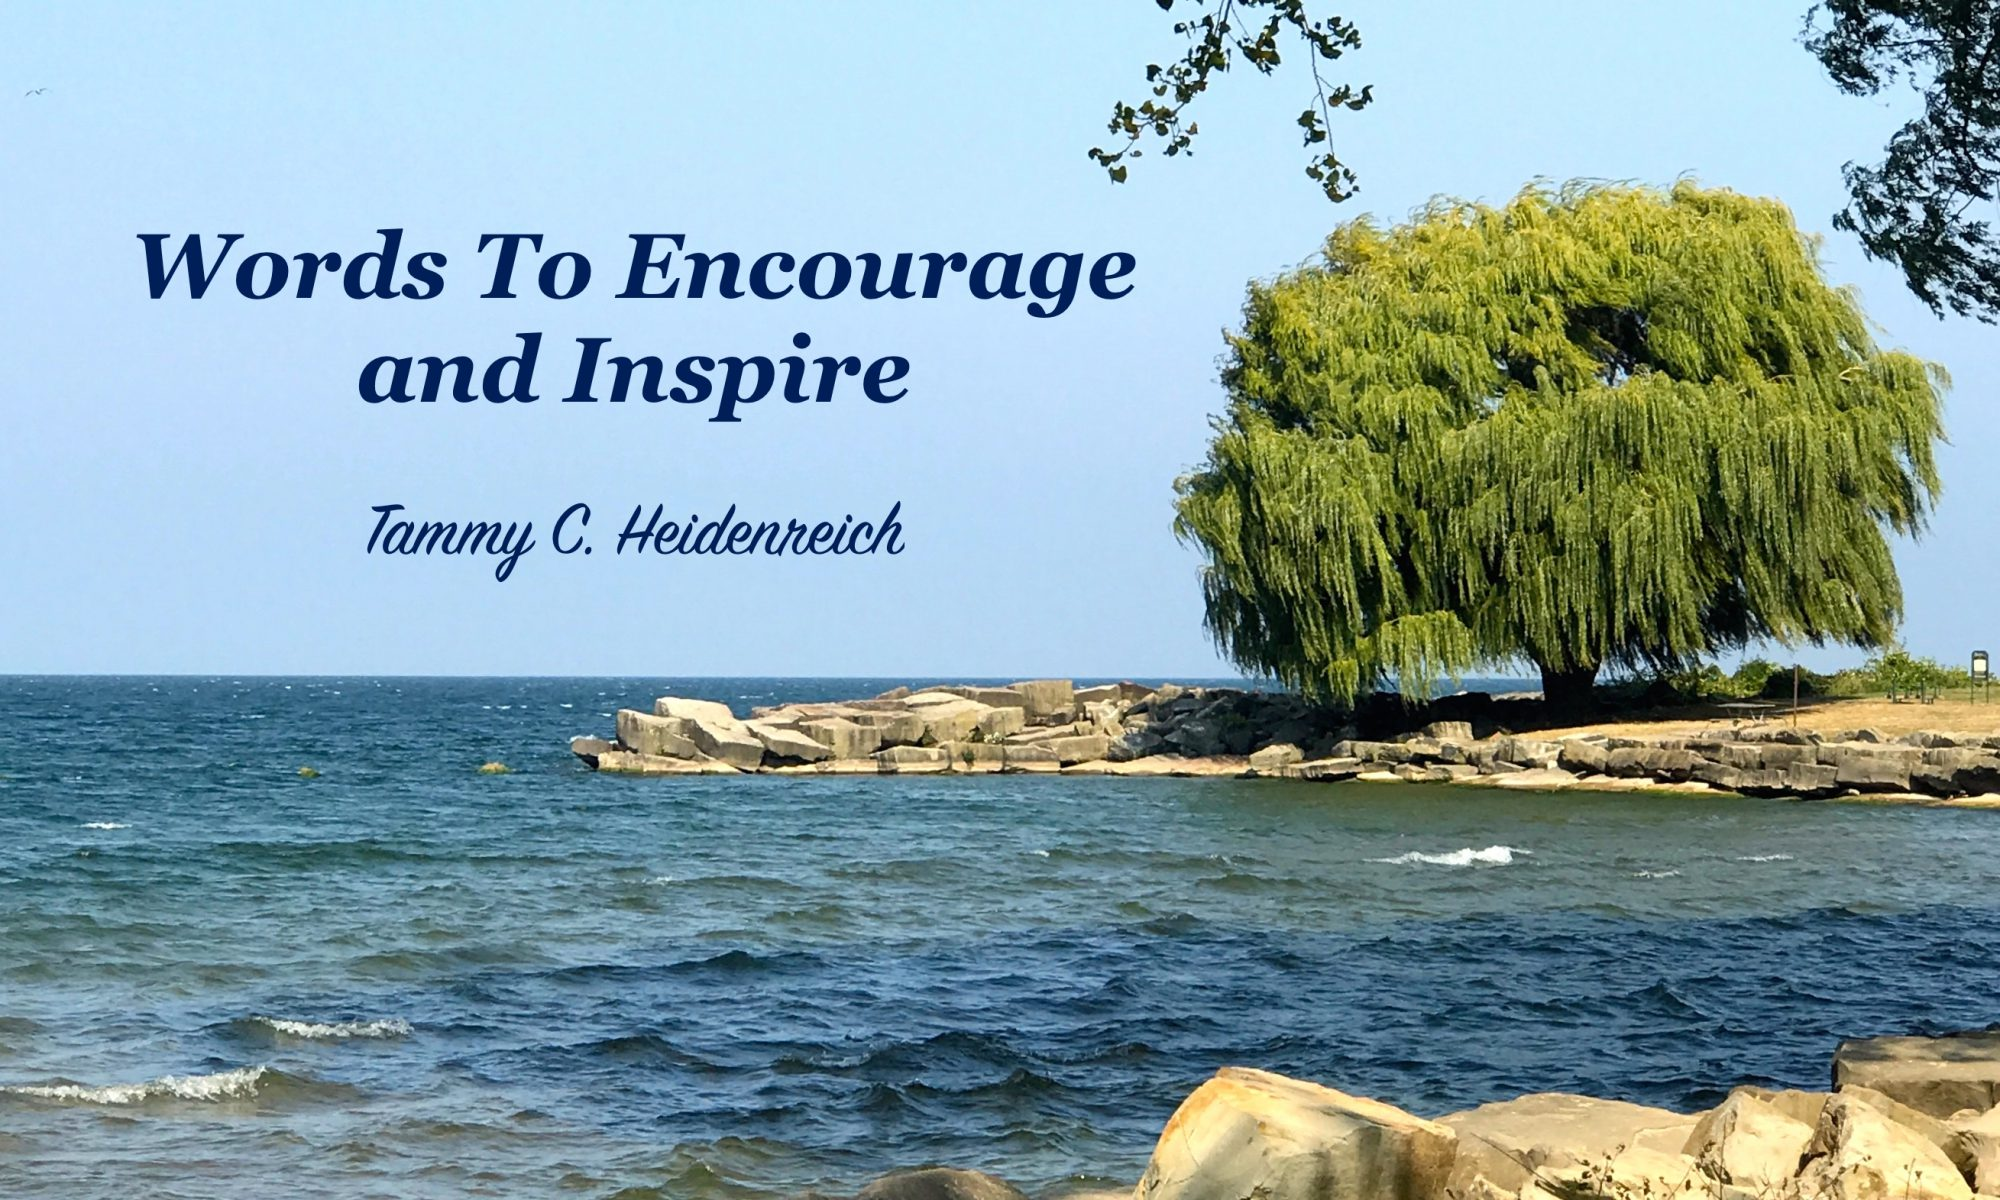 Words To Encourage and Inspire